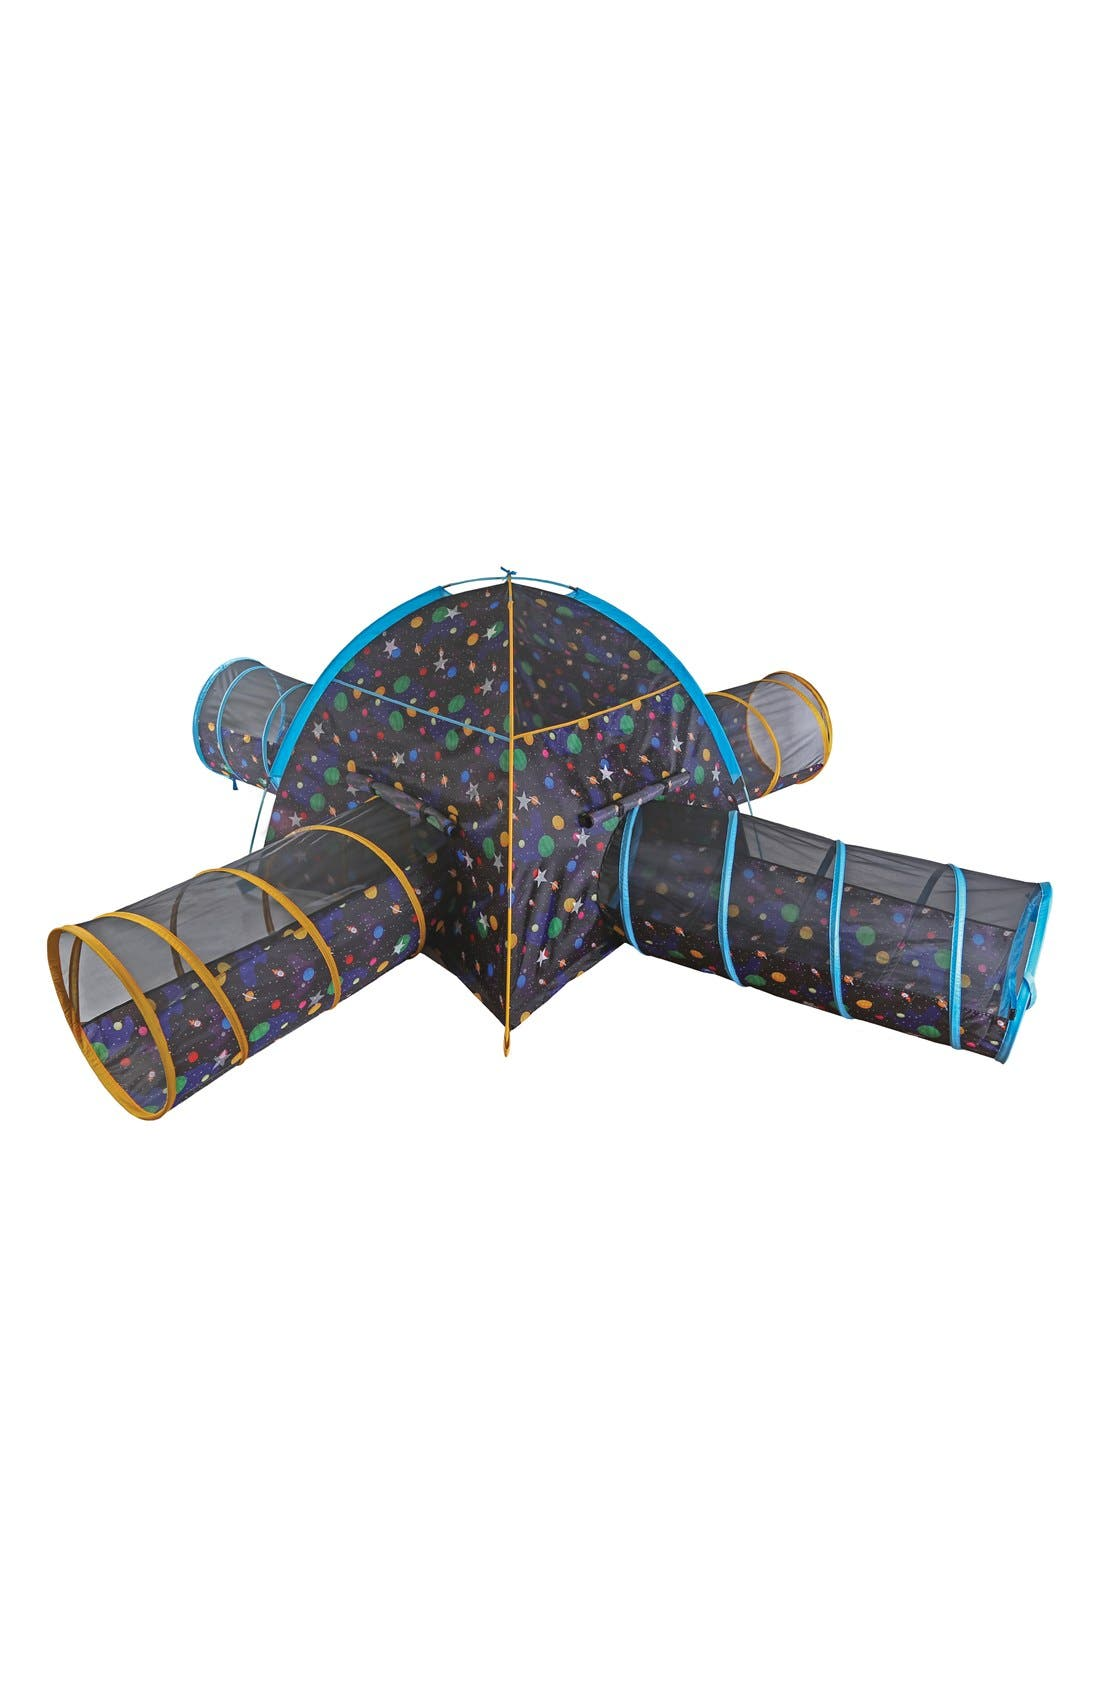 'Galaxy Junction' Dome Tent with Connecting Tunnels,                         Main,                         color, MULTI